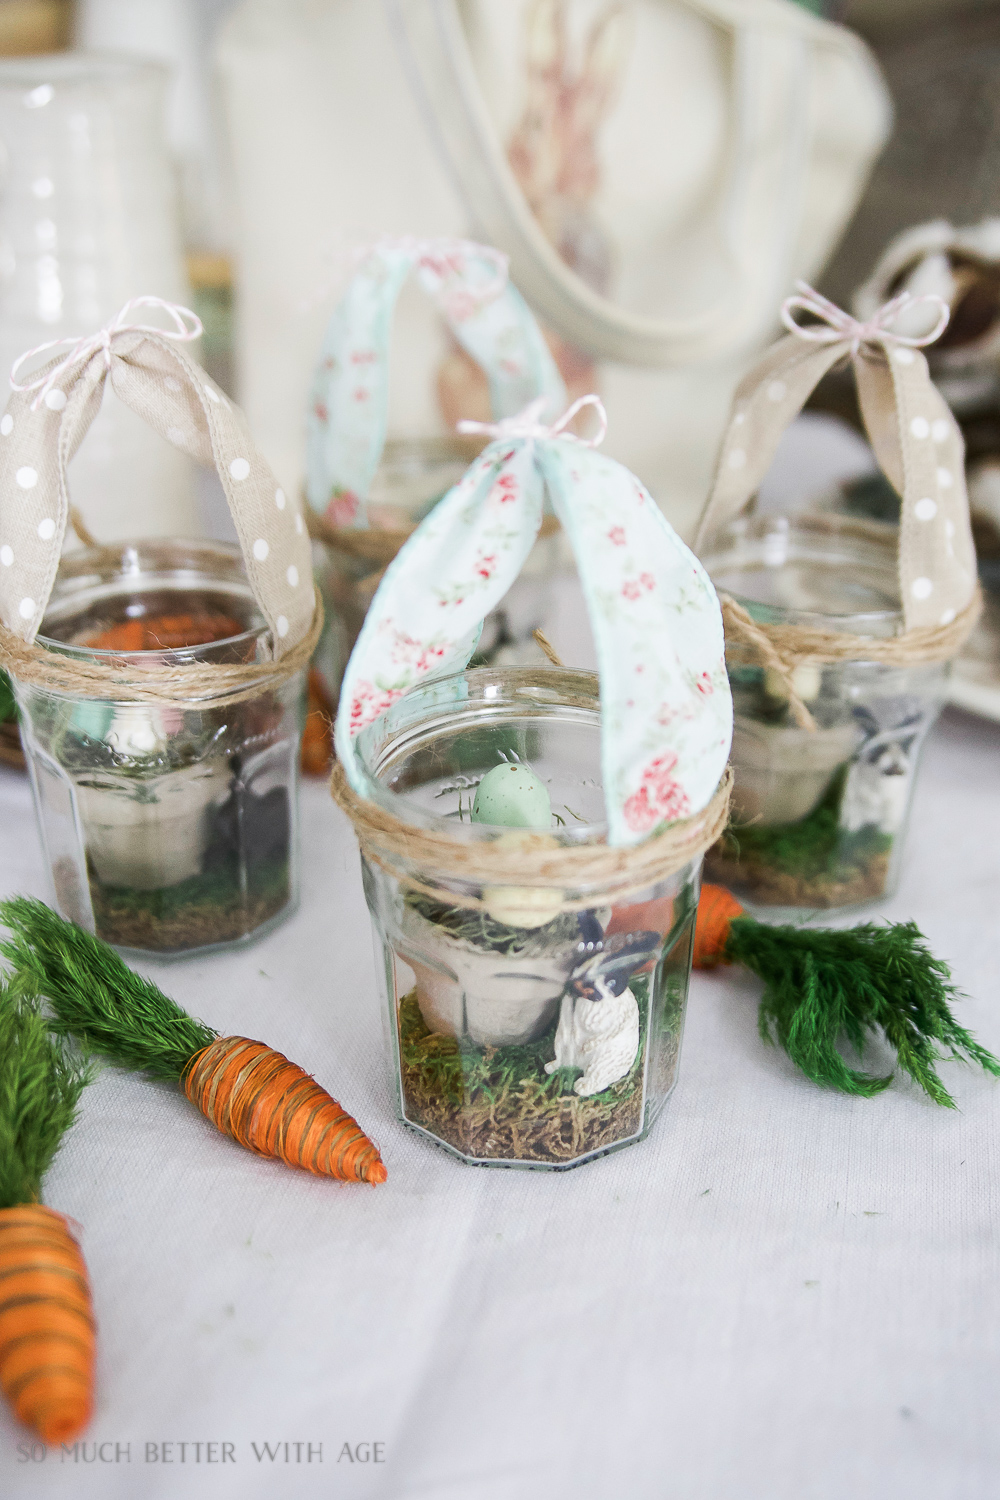 Glass Easter Jars with Bunny Ears / pretty decorated glass jars on table - So Much Better With Age